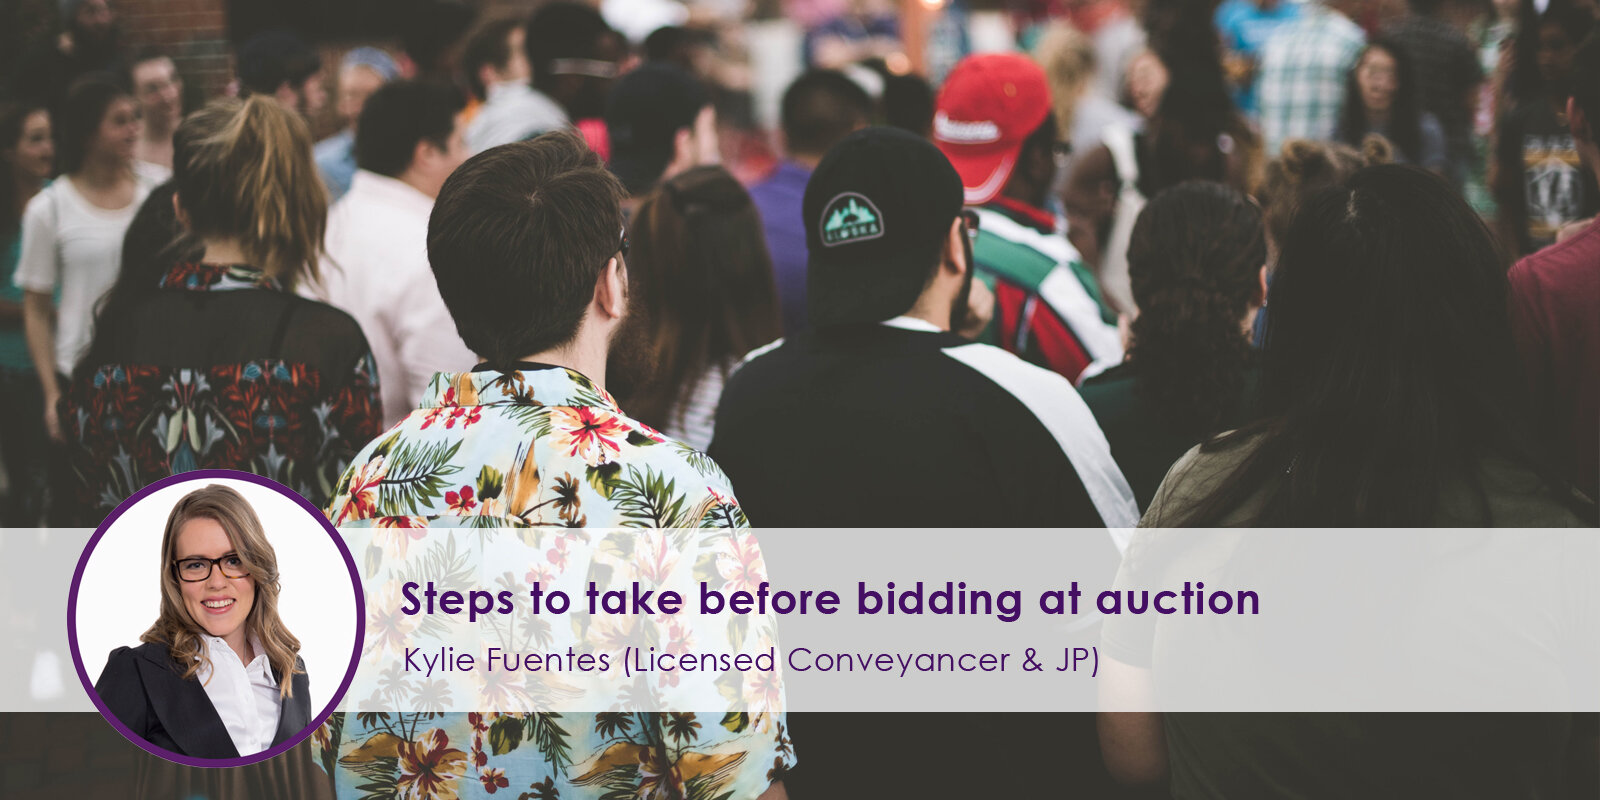 Steps-to-take-before-bidding-at-auction.jpg